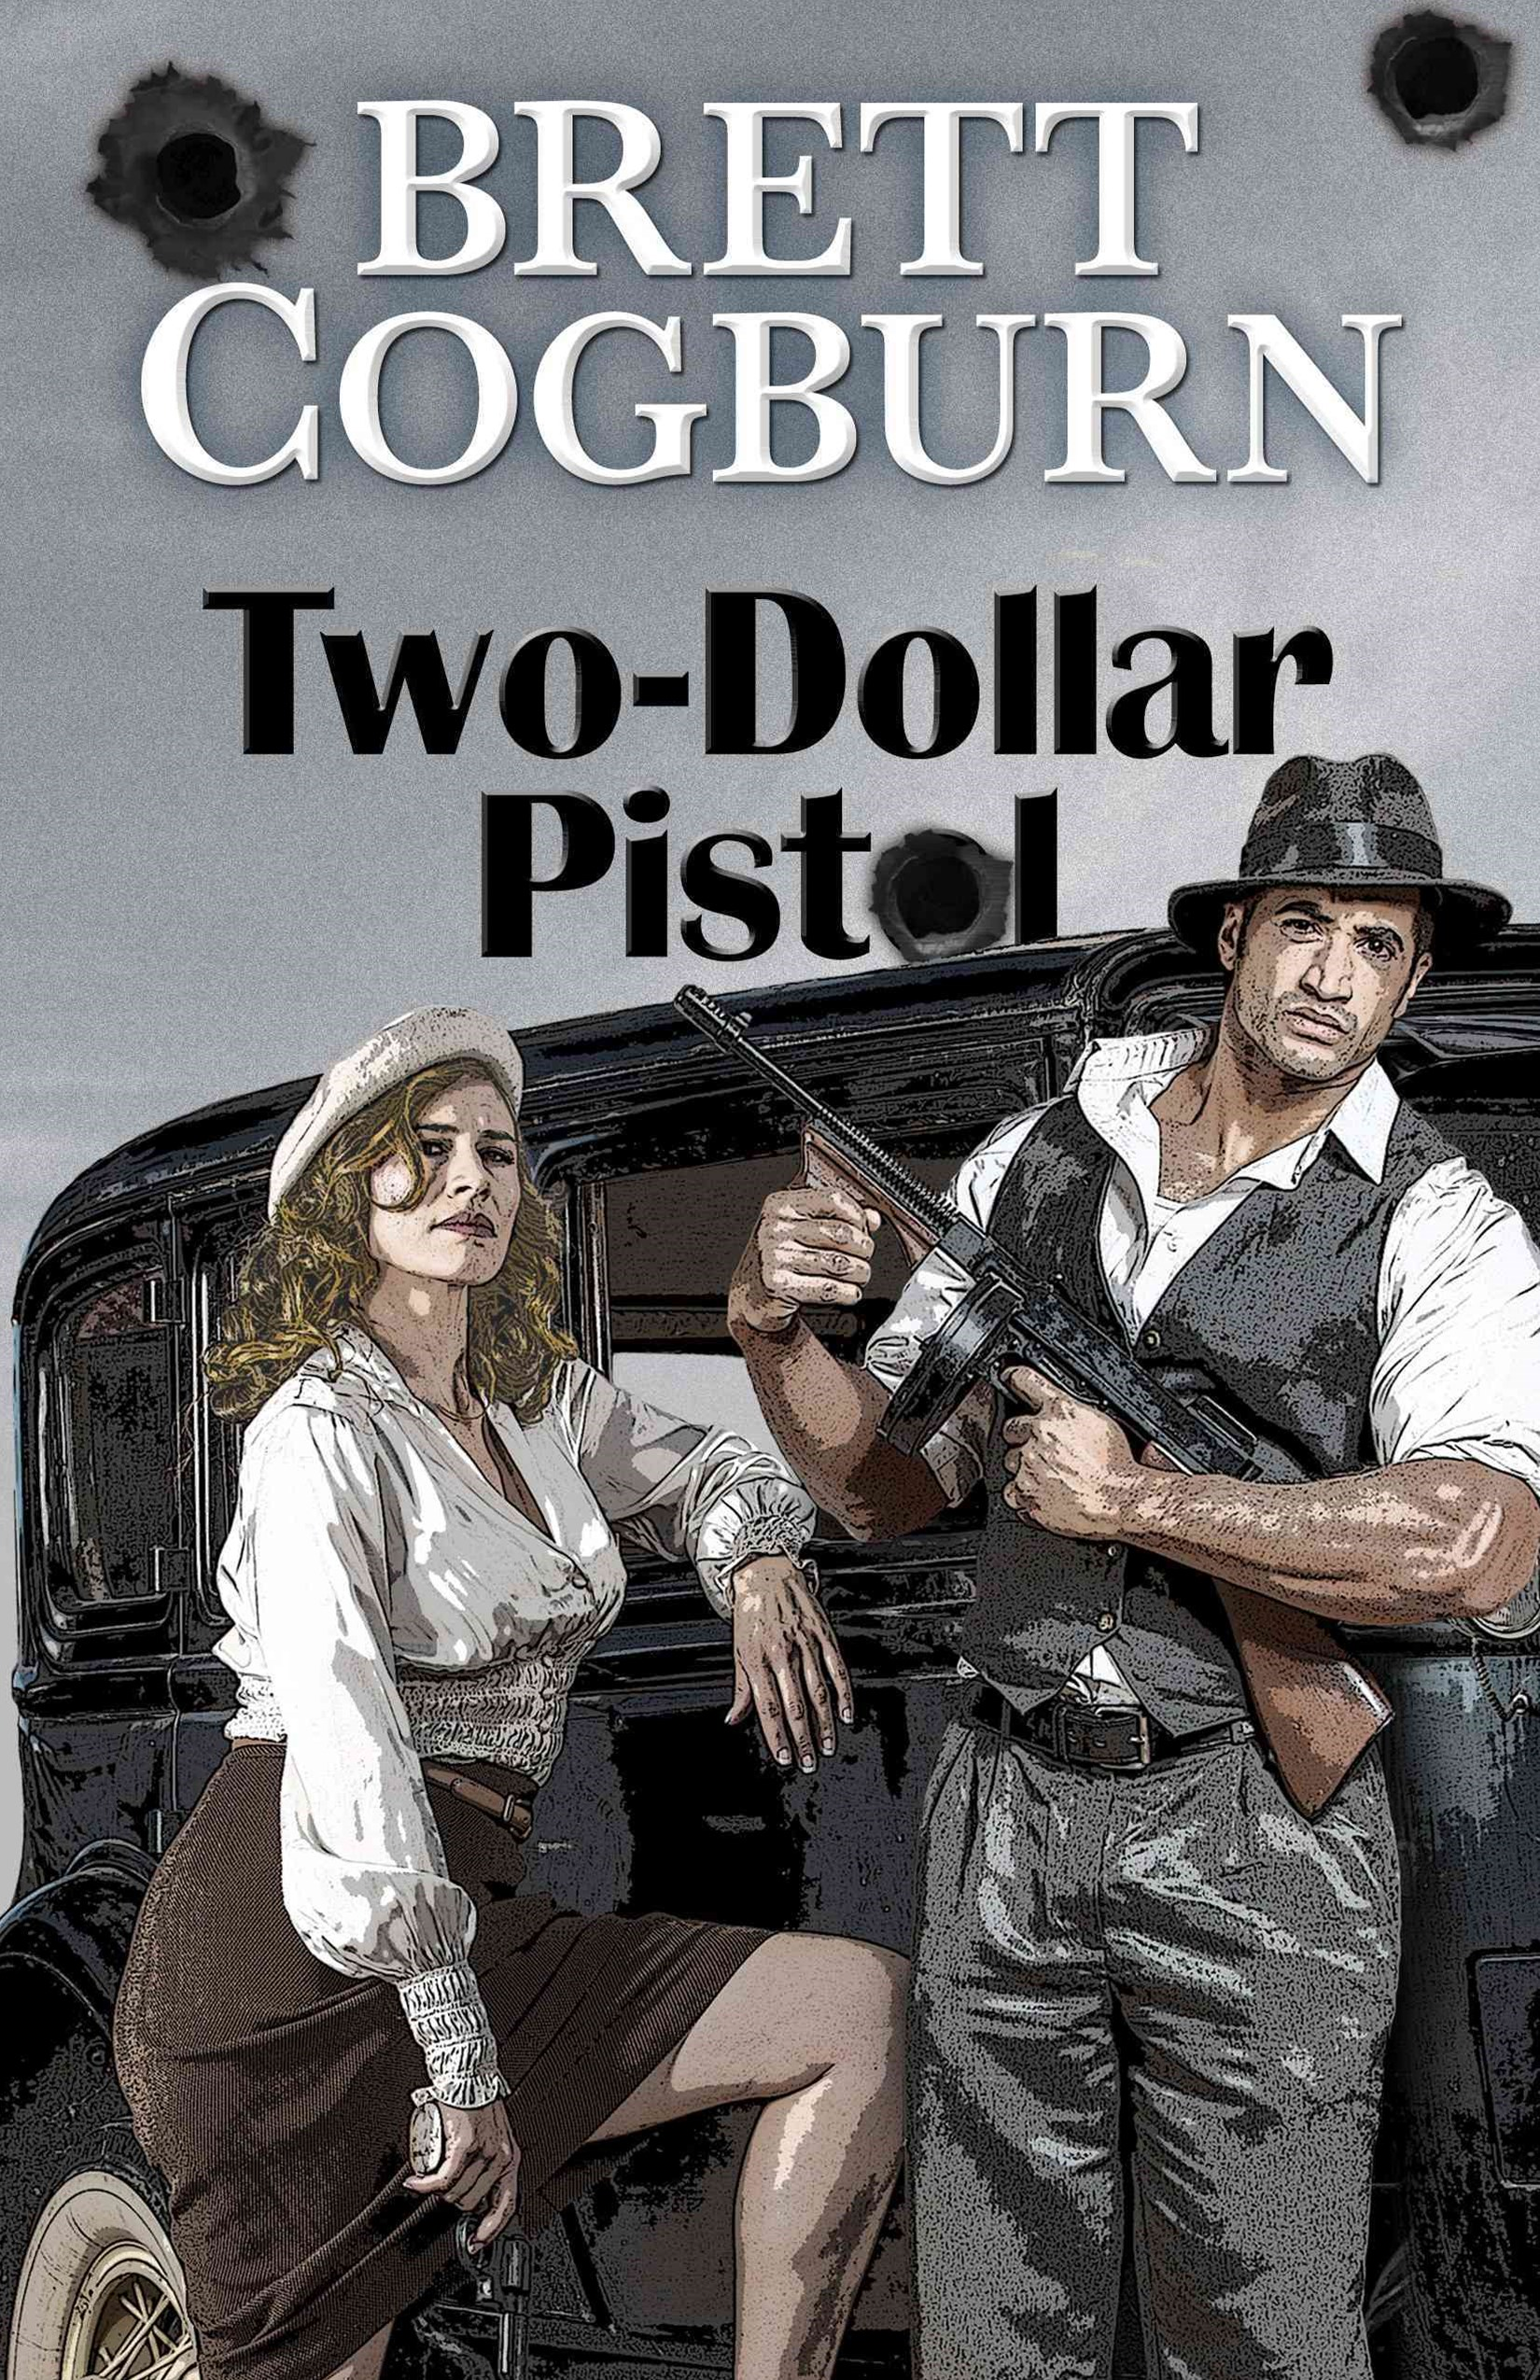 Two-Dollar Pistol